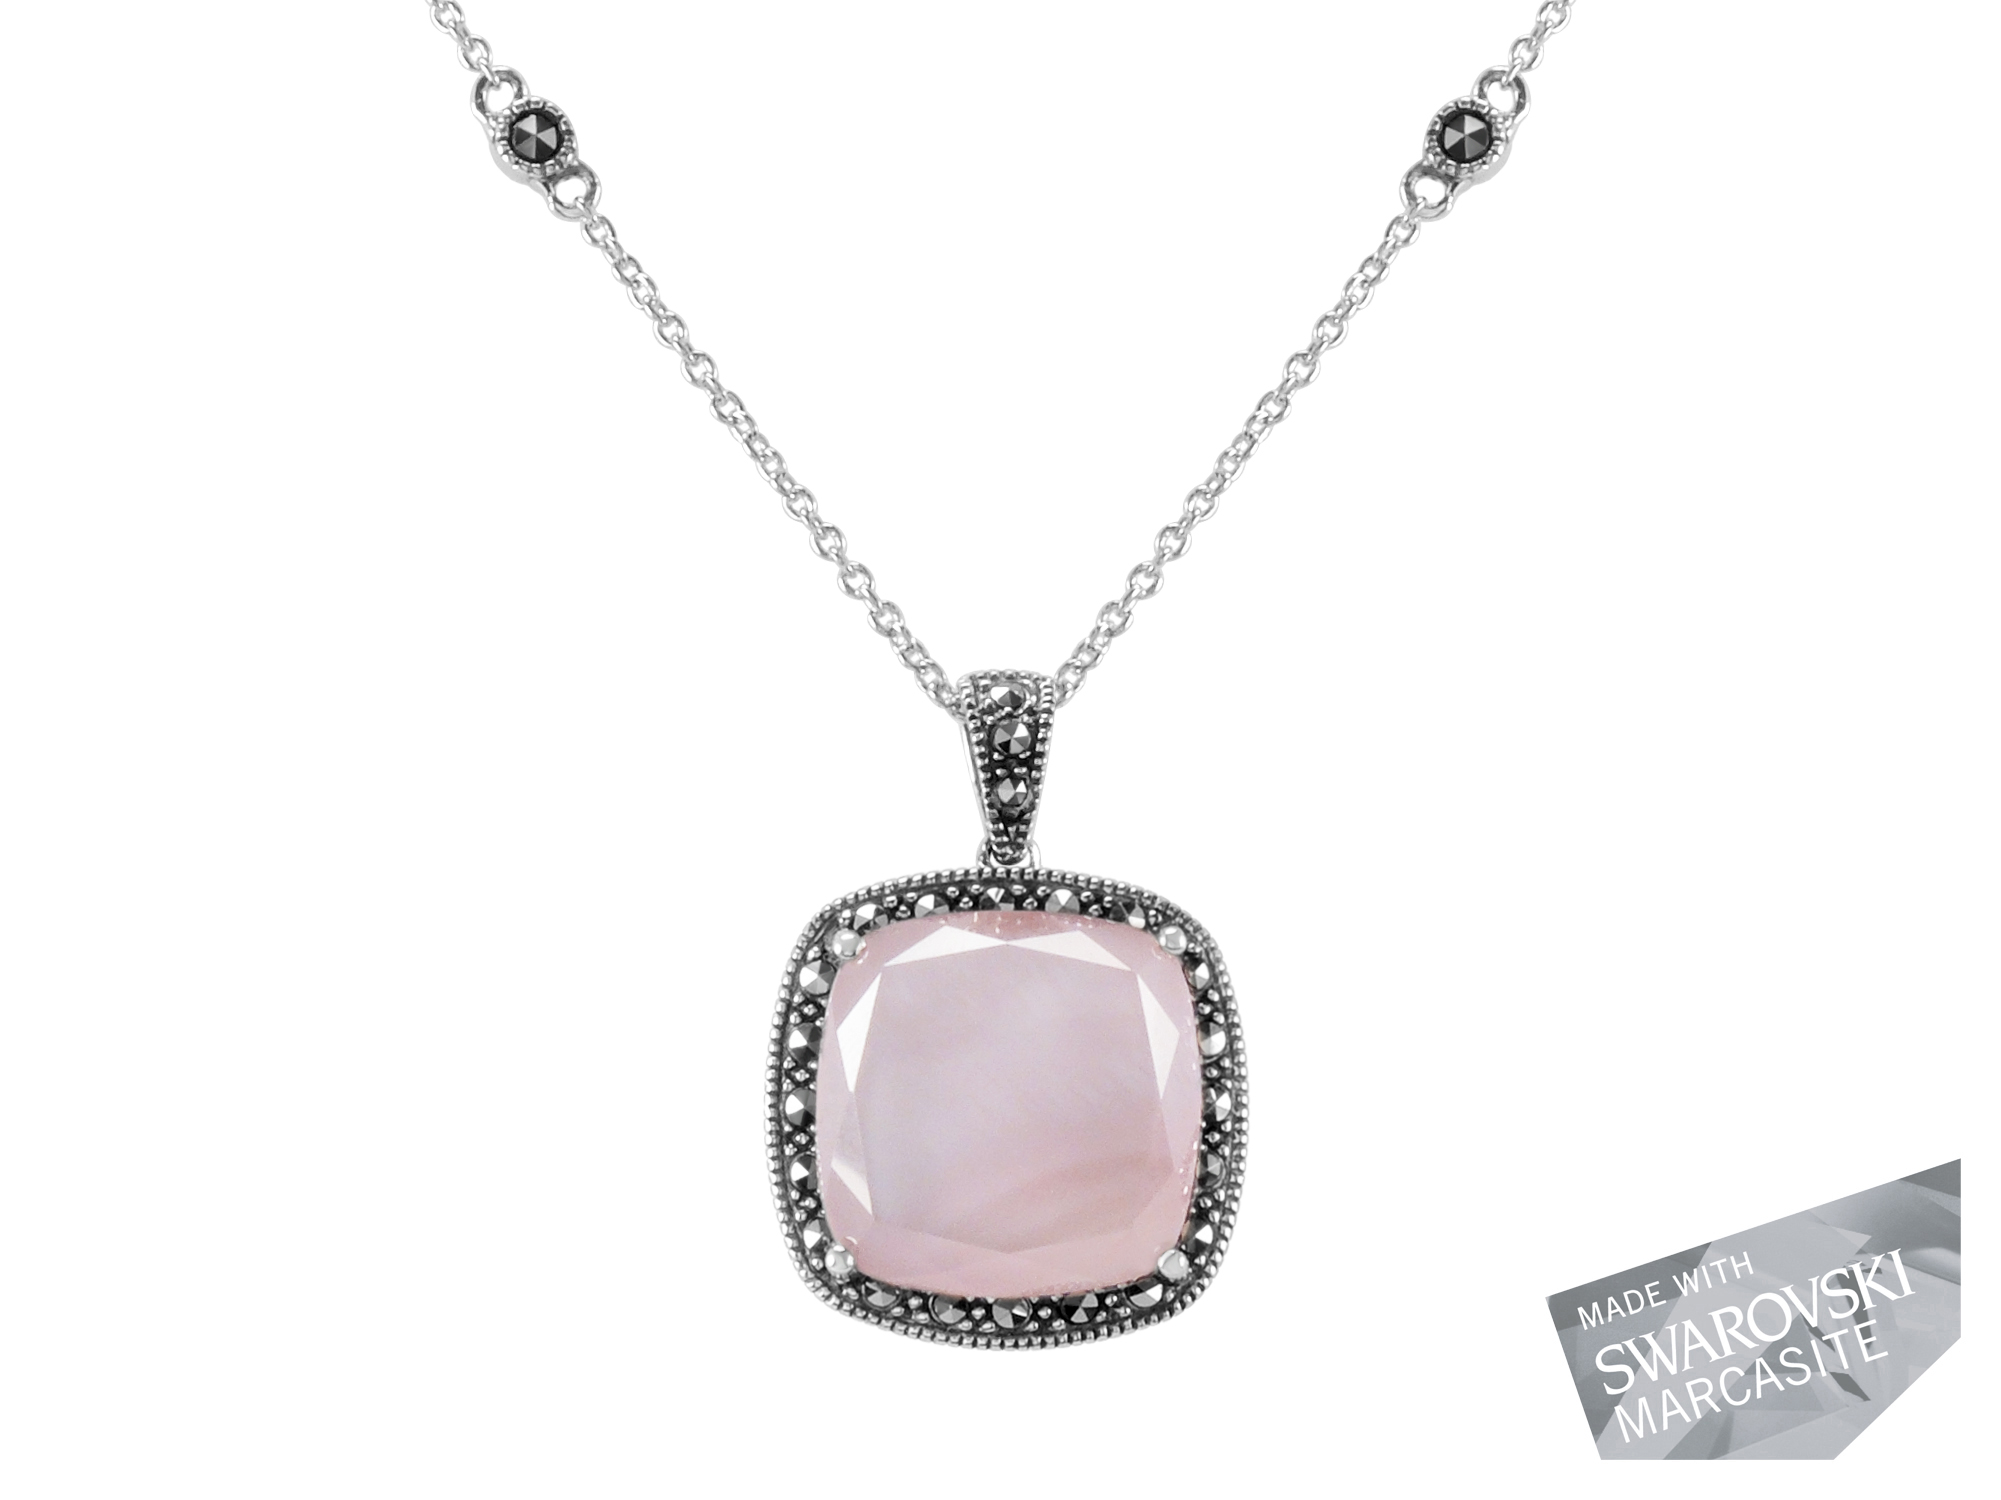 Pink Mother-of-Pearl Doublet Pendant on Chain MJ18935